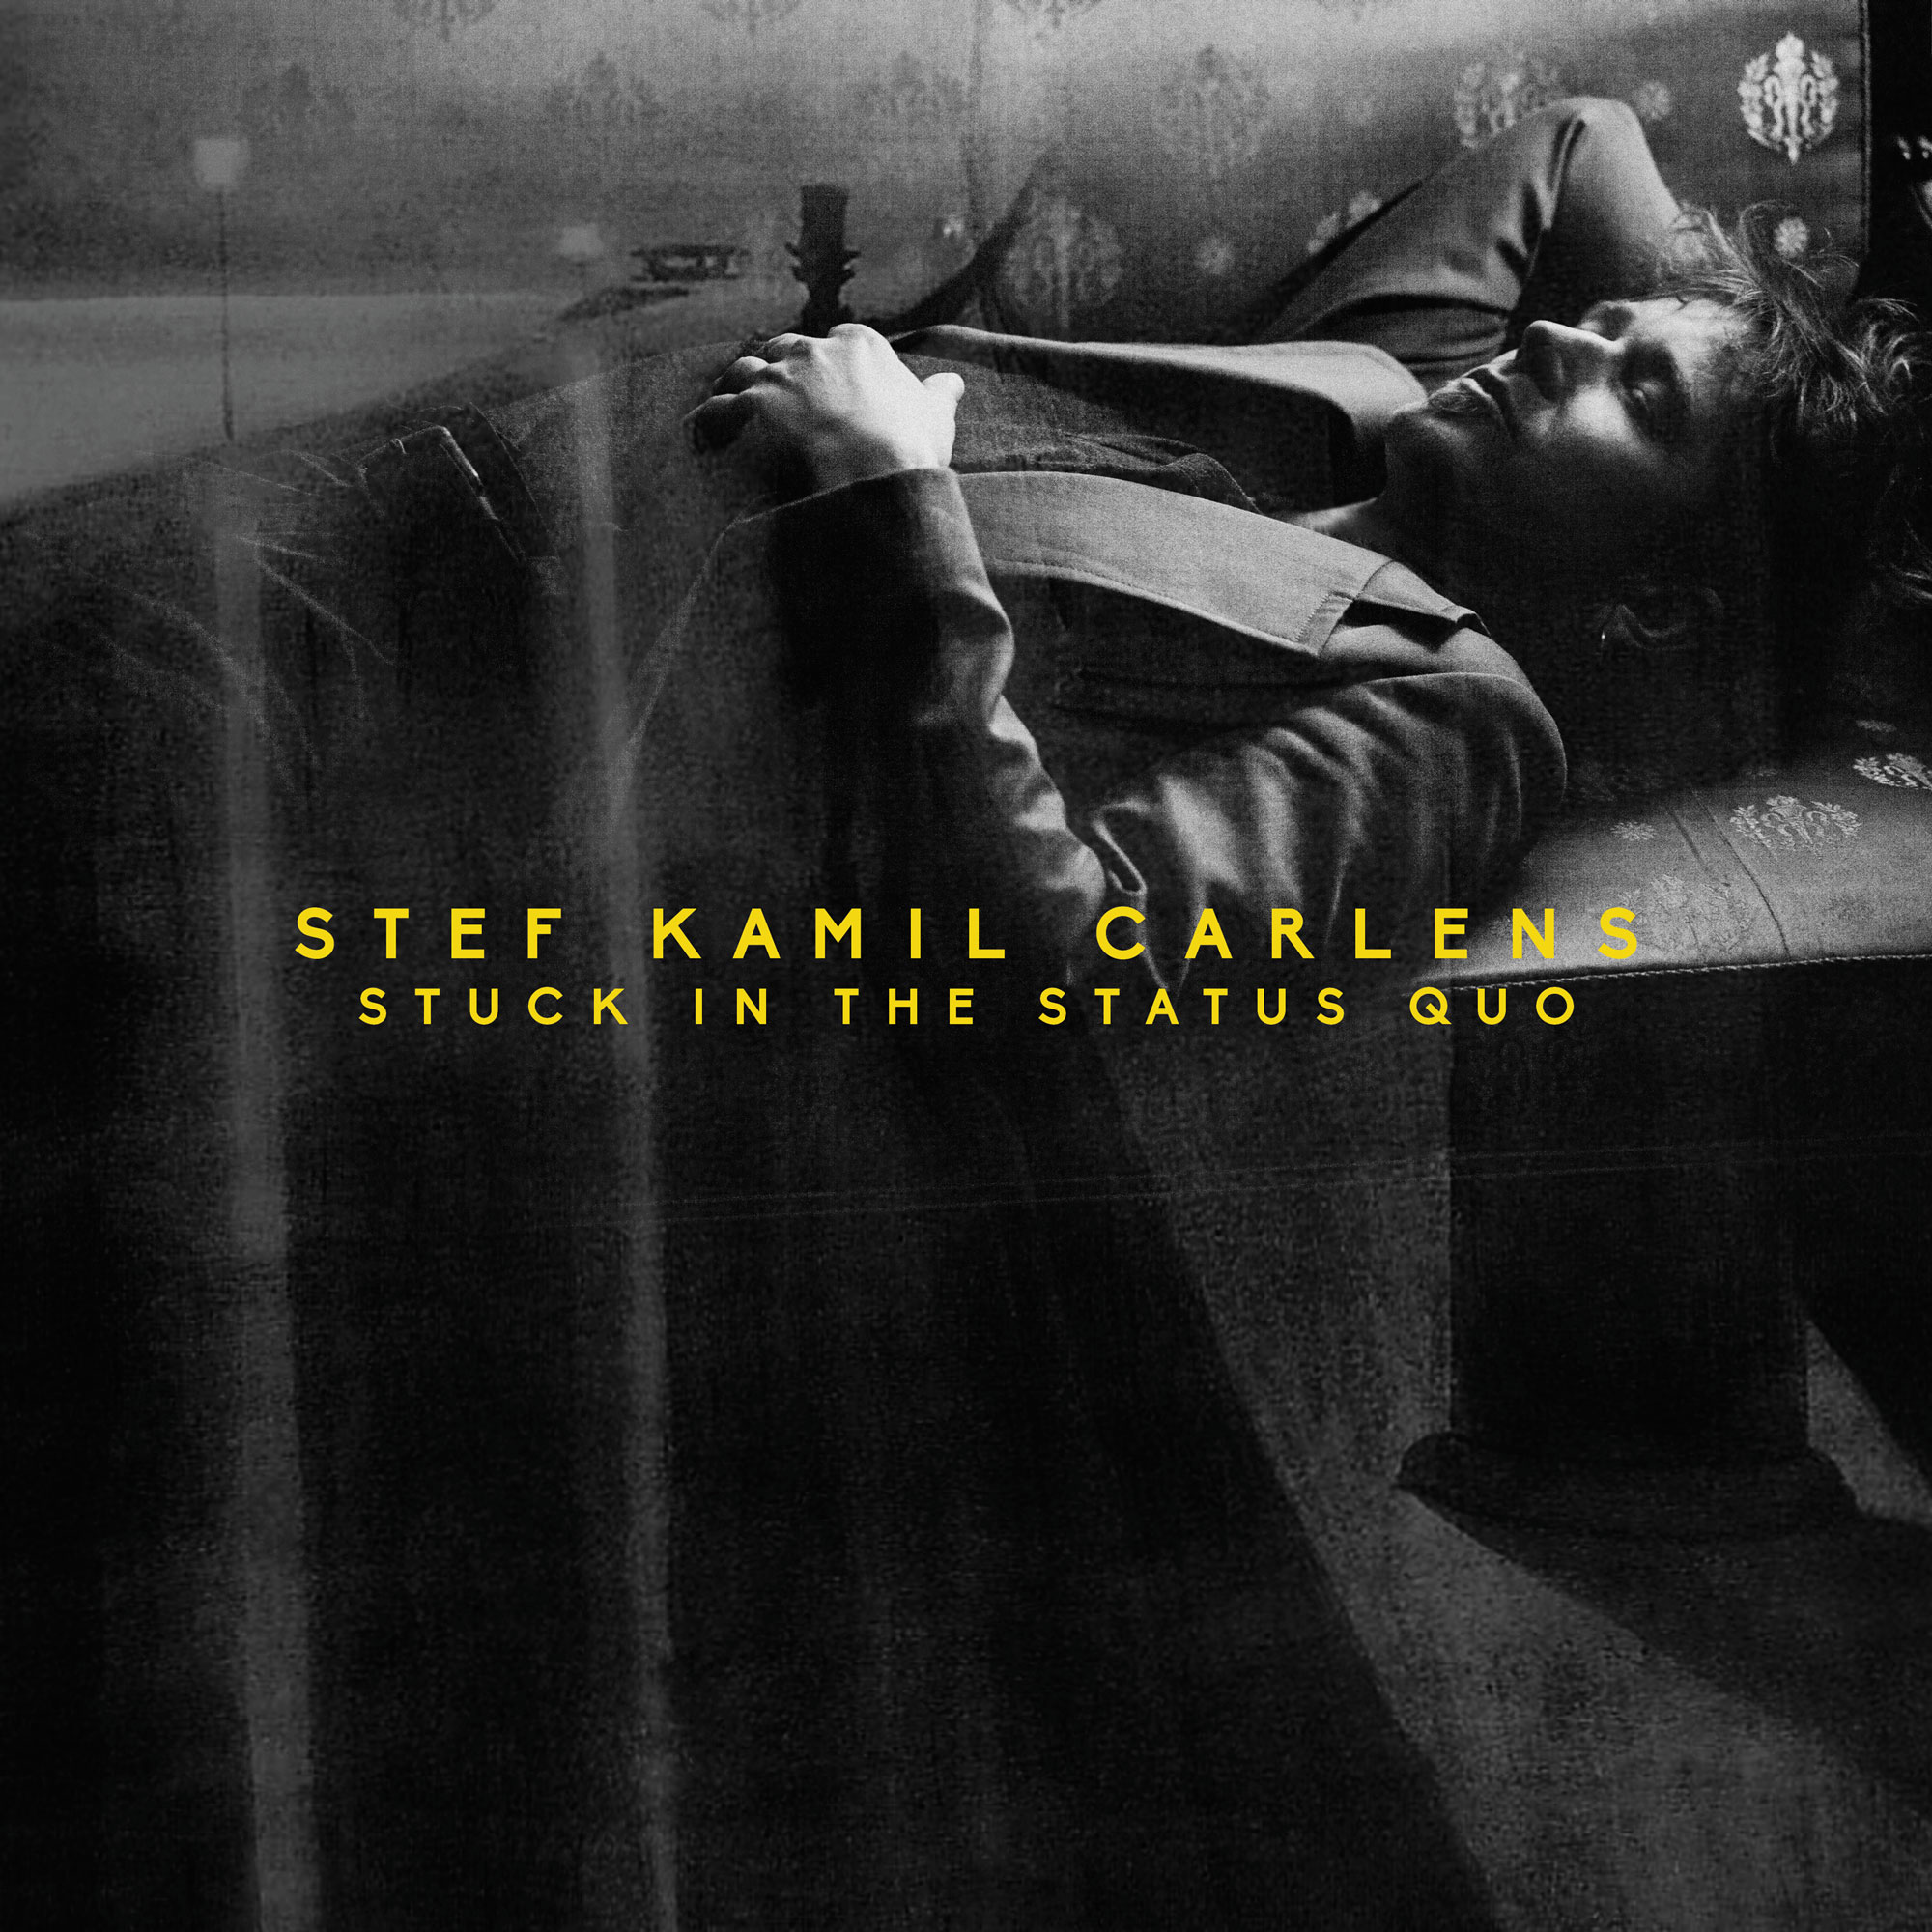 Stef Kamil Carlens - Stuck In The Status Quo